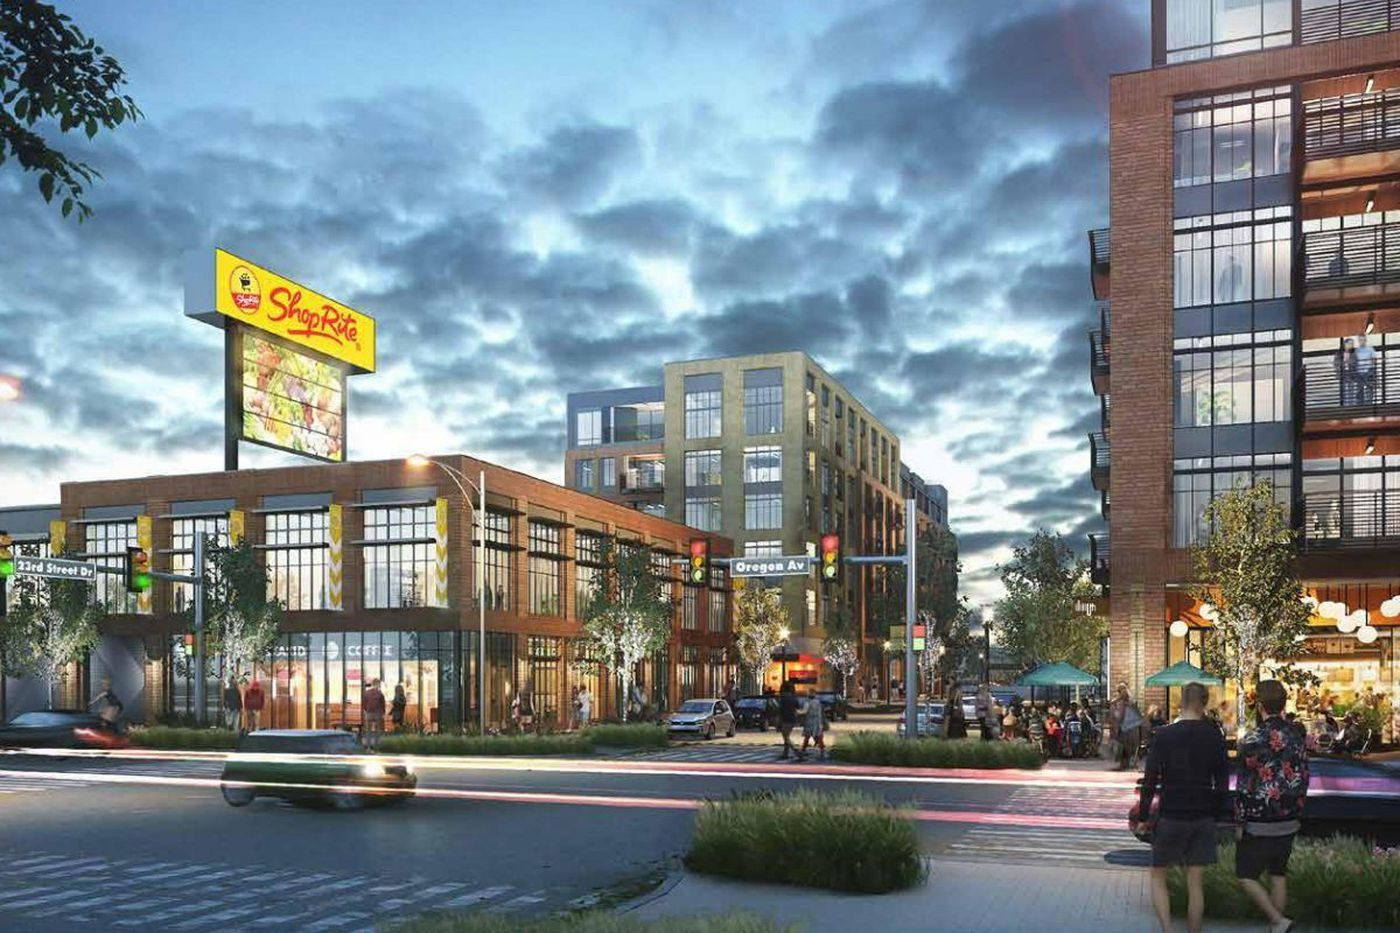 South Philly shopping center owner buys more land near retail strip slated for redevelopment